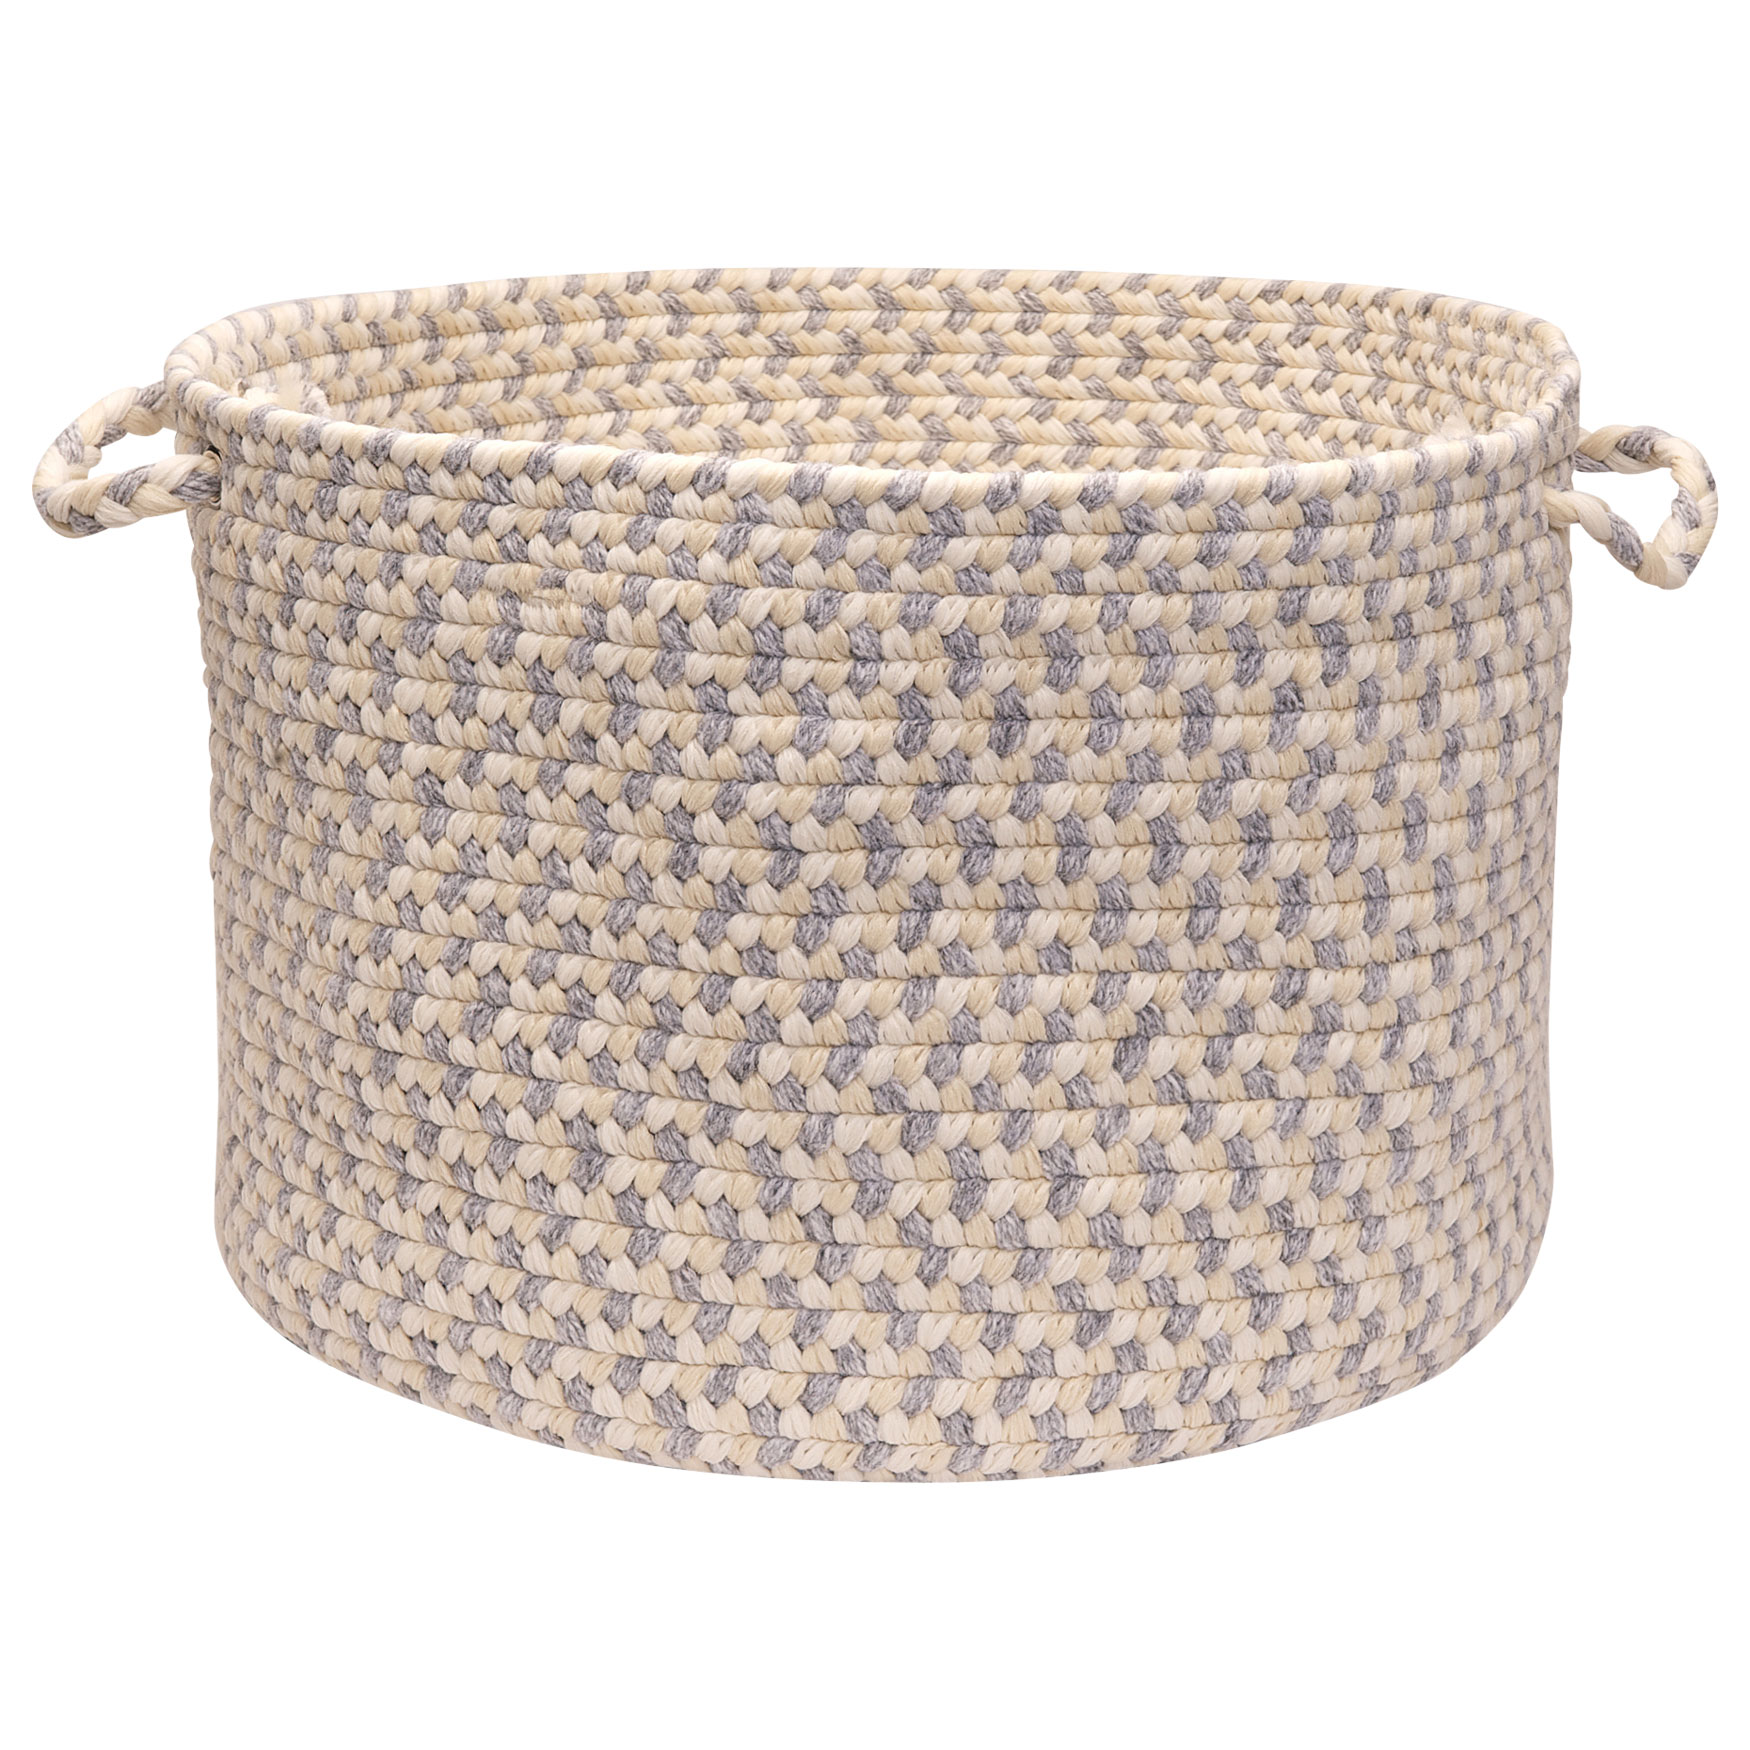 Stone Harbor Grey Stone Basket,